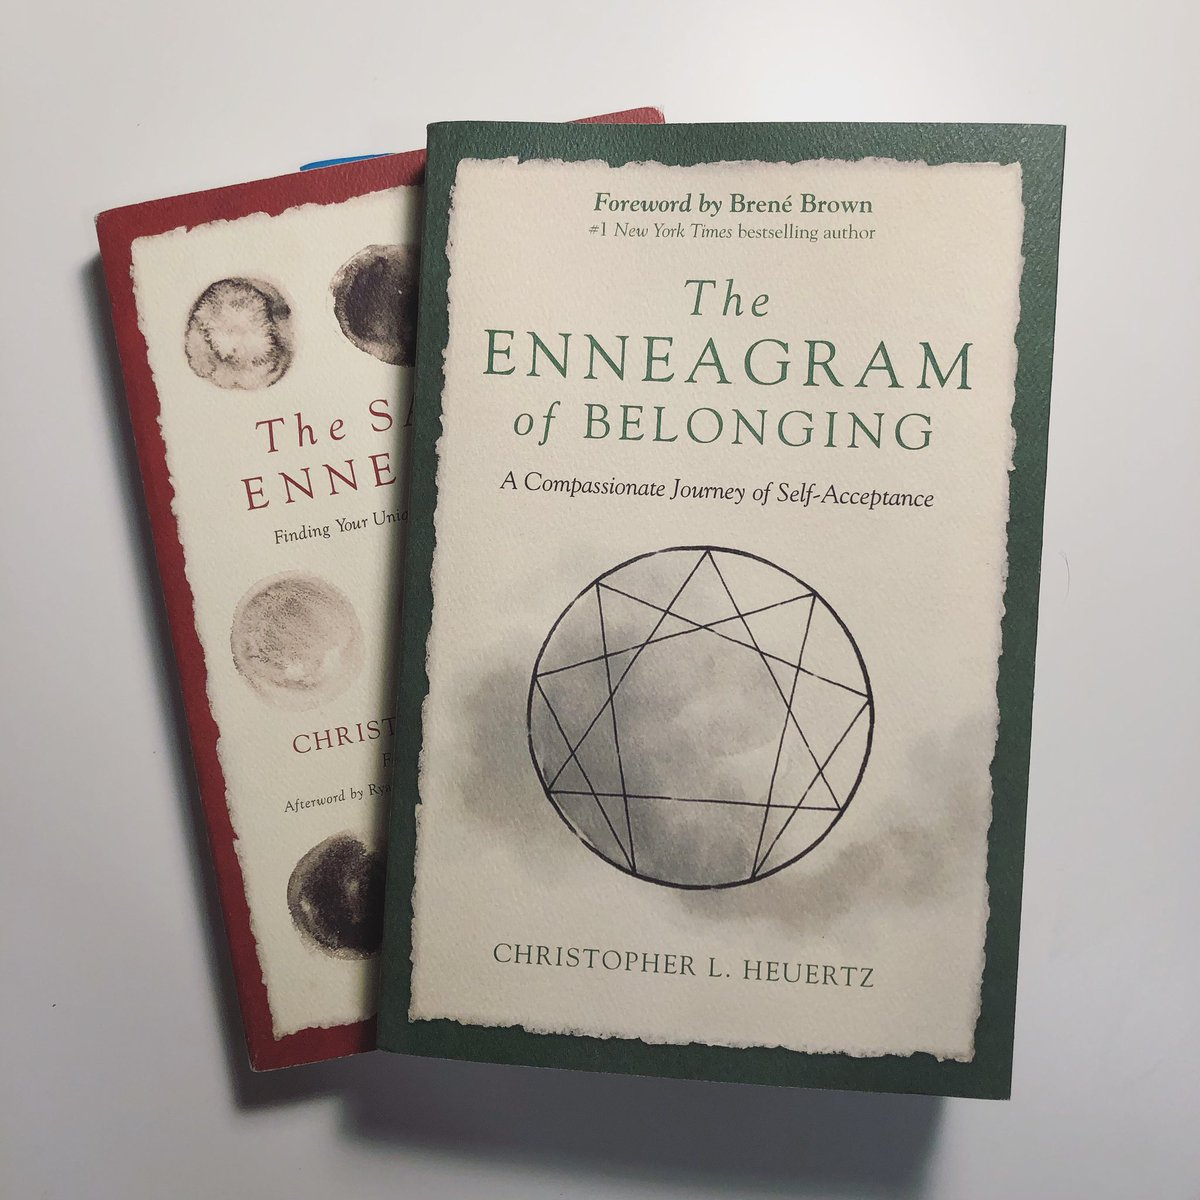 044/100 THE ENNEAGRAM OF BELONGING by @chrisheuertz   A brand new book recommendation + a podcast and documentary (@enneagrammovie) to go along. Check it out!  Listen at https://t.co/MBo795Vt8V   #the100dayproject #the100daysofEnneagram #enneagram https://t.co/y8yh7HooC7